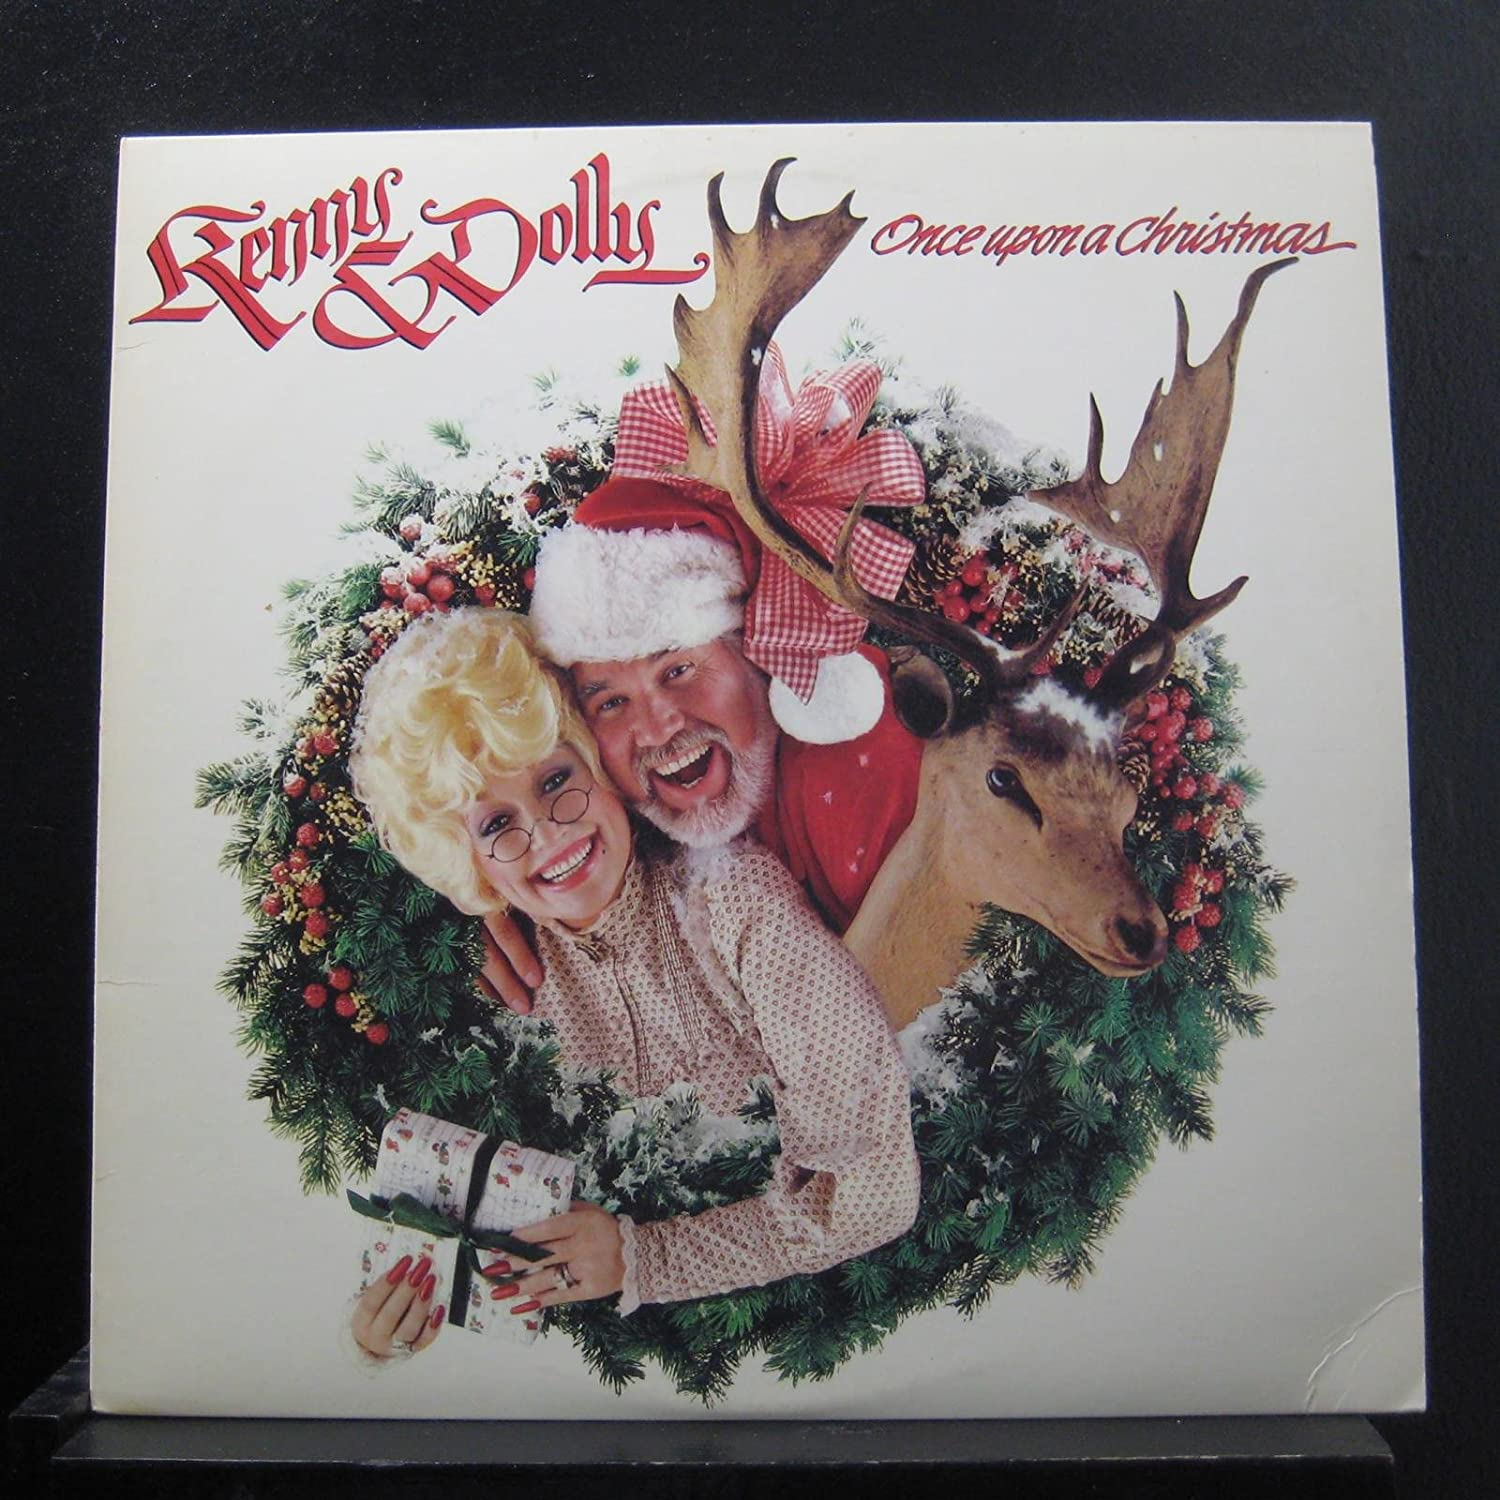 Kenny & Dolly - Kenny Rogers & Dolly Parton - Once upon a Christmas ...